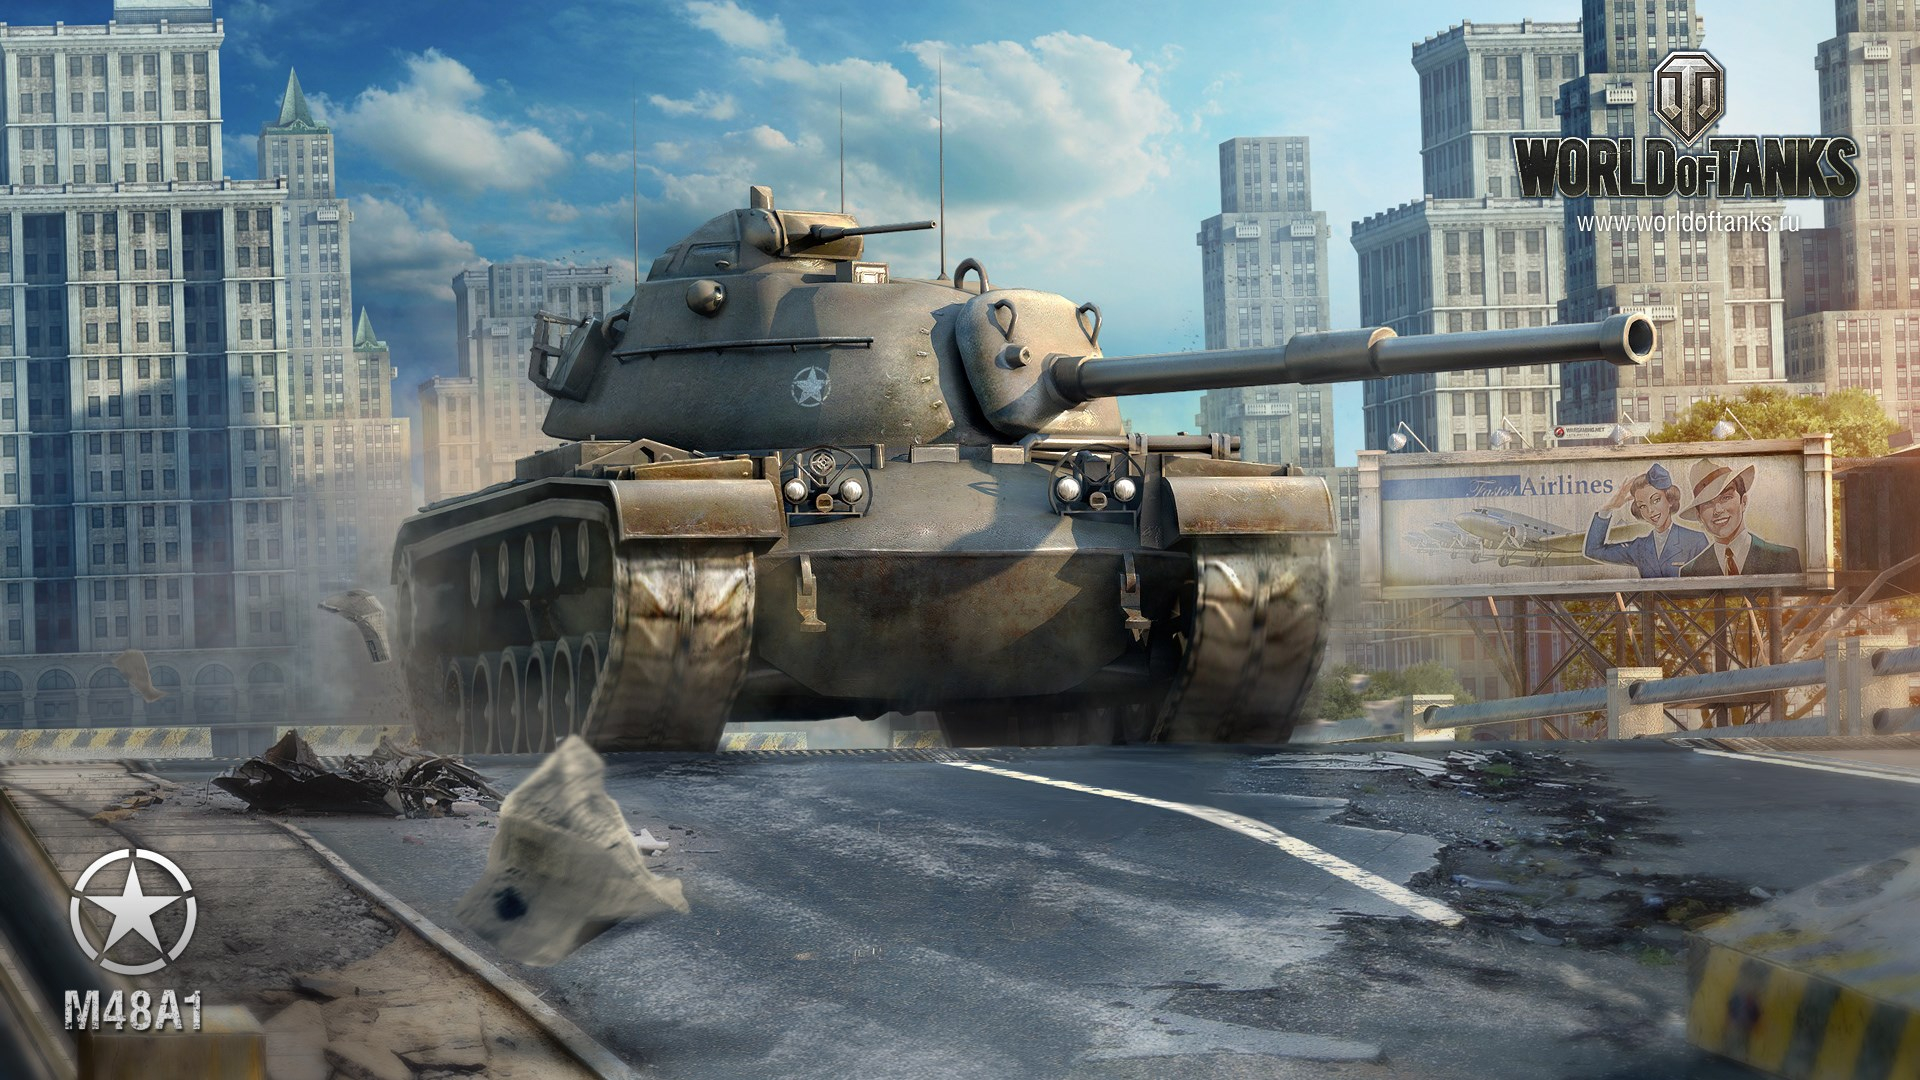 World of tanks - M48A1